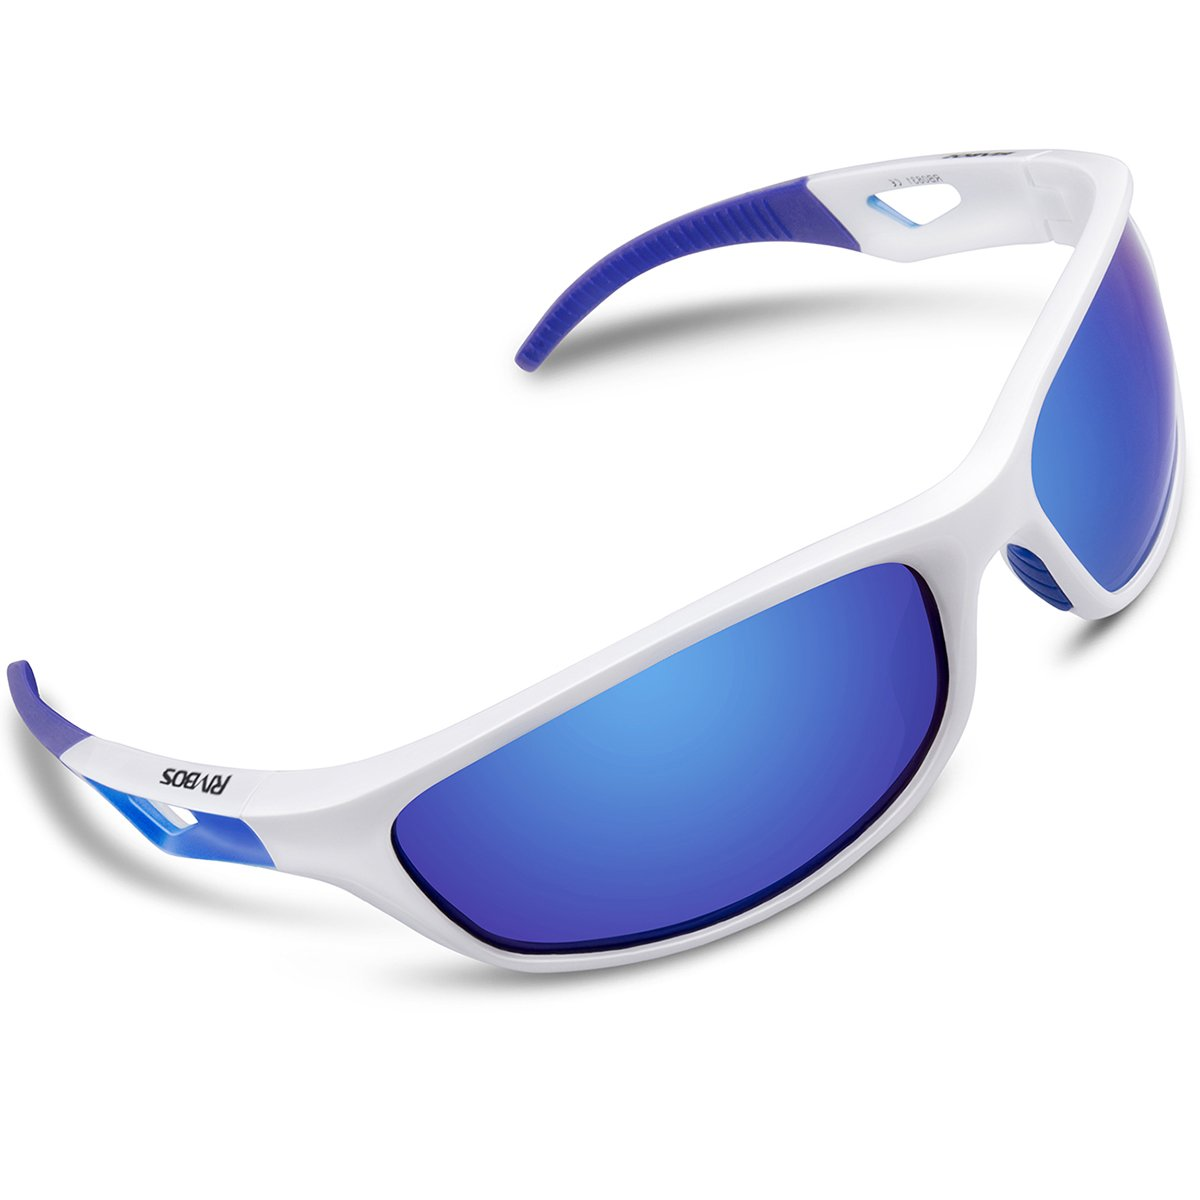 9c91966cfe RIVBOS Polarized Sports Sunglasses Driving Sun Glasses for Men Women Tr 90  Unbreakable Frame for Cycling Baseball Running Rb831 (WhiteBlue Mirror Lens)